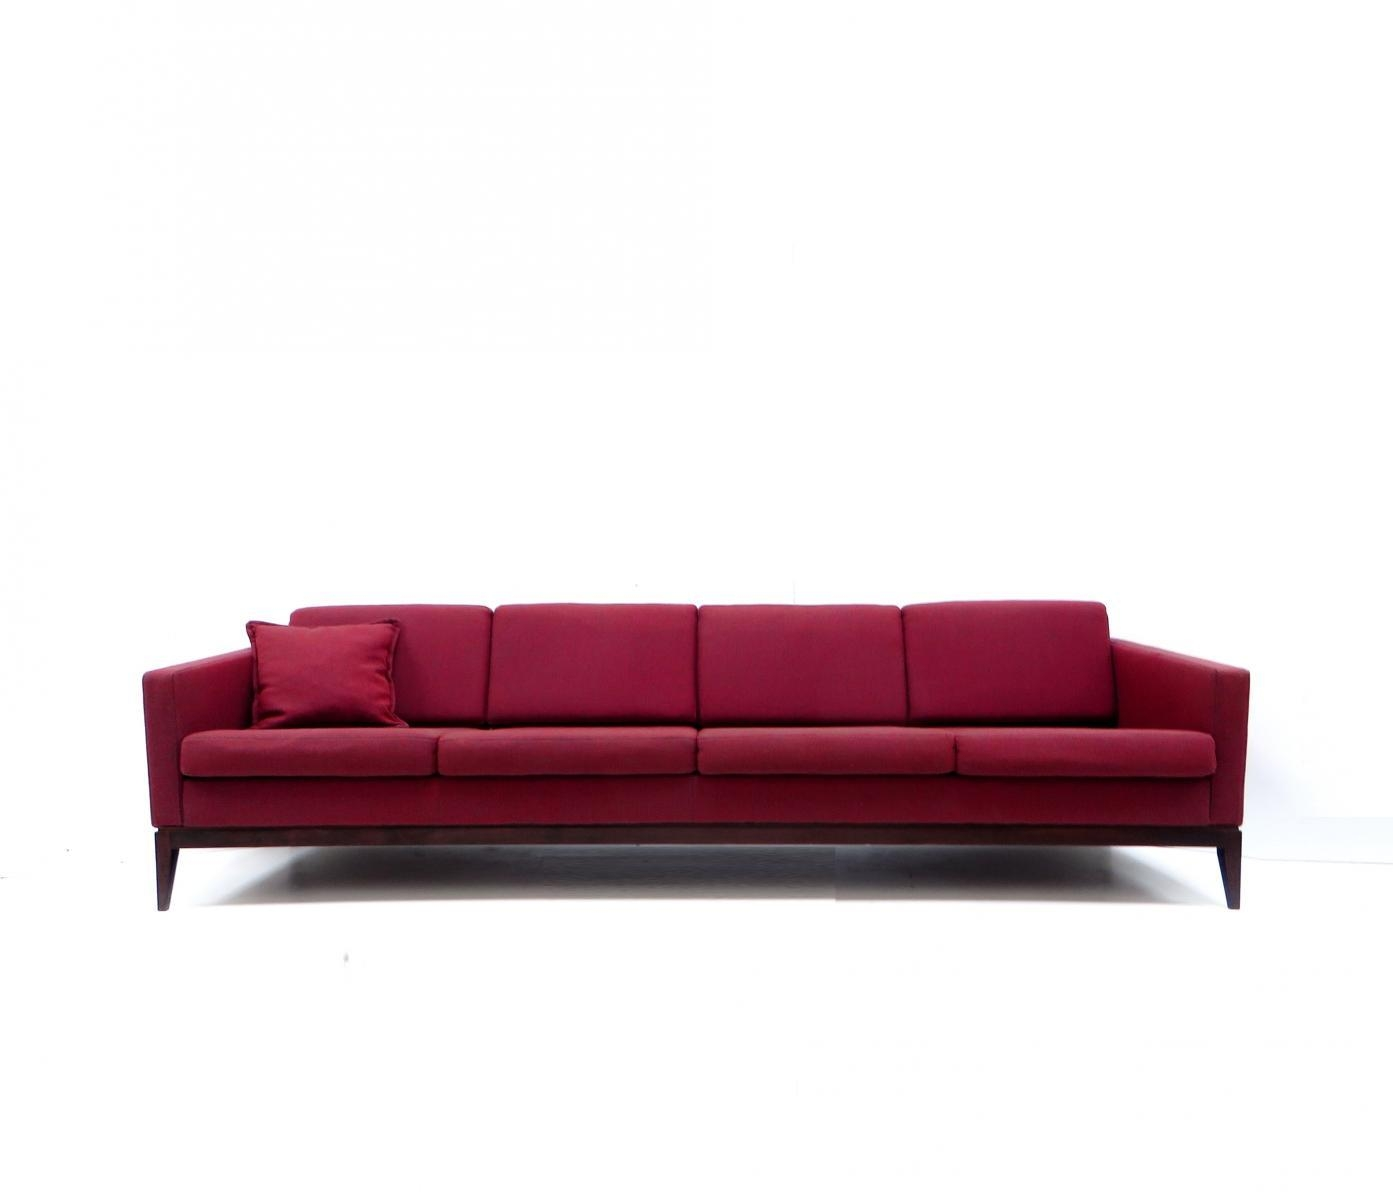 Large Vintage Burgundy Four Seater Sofa For Sale At Pamono For Four Seater Sofas (View 19 of 20)